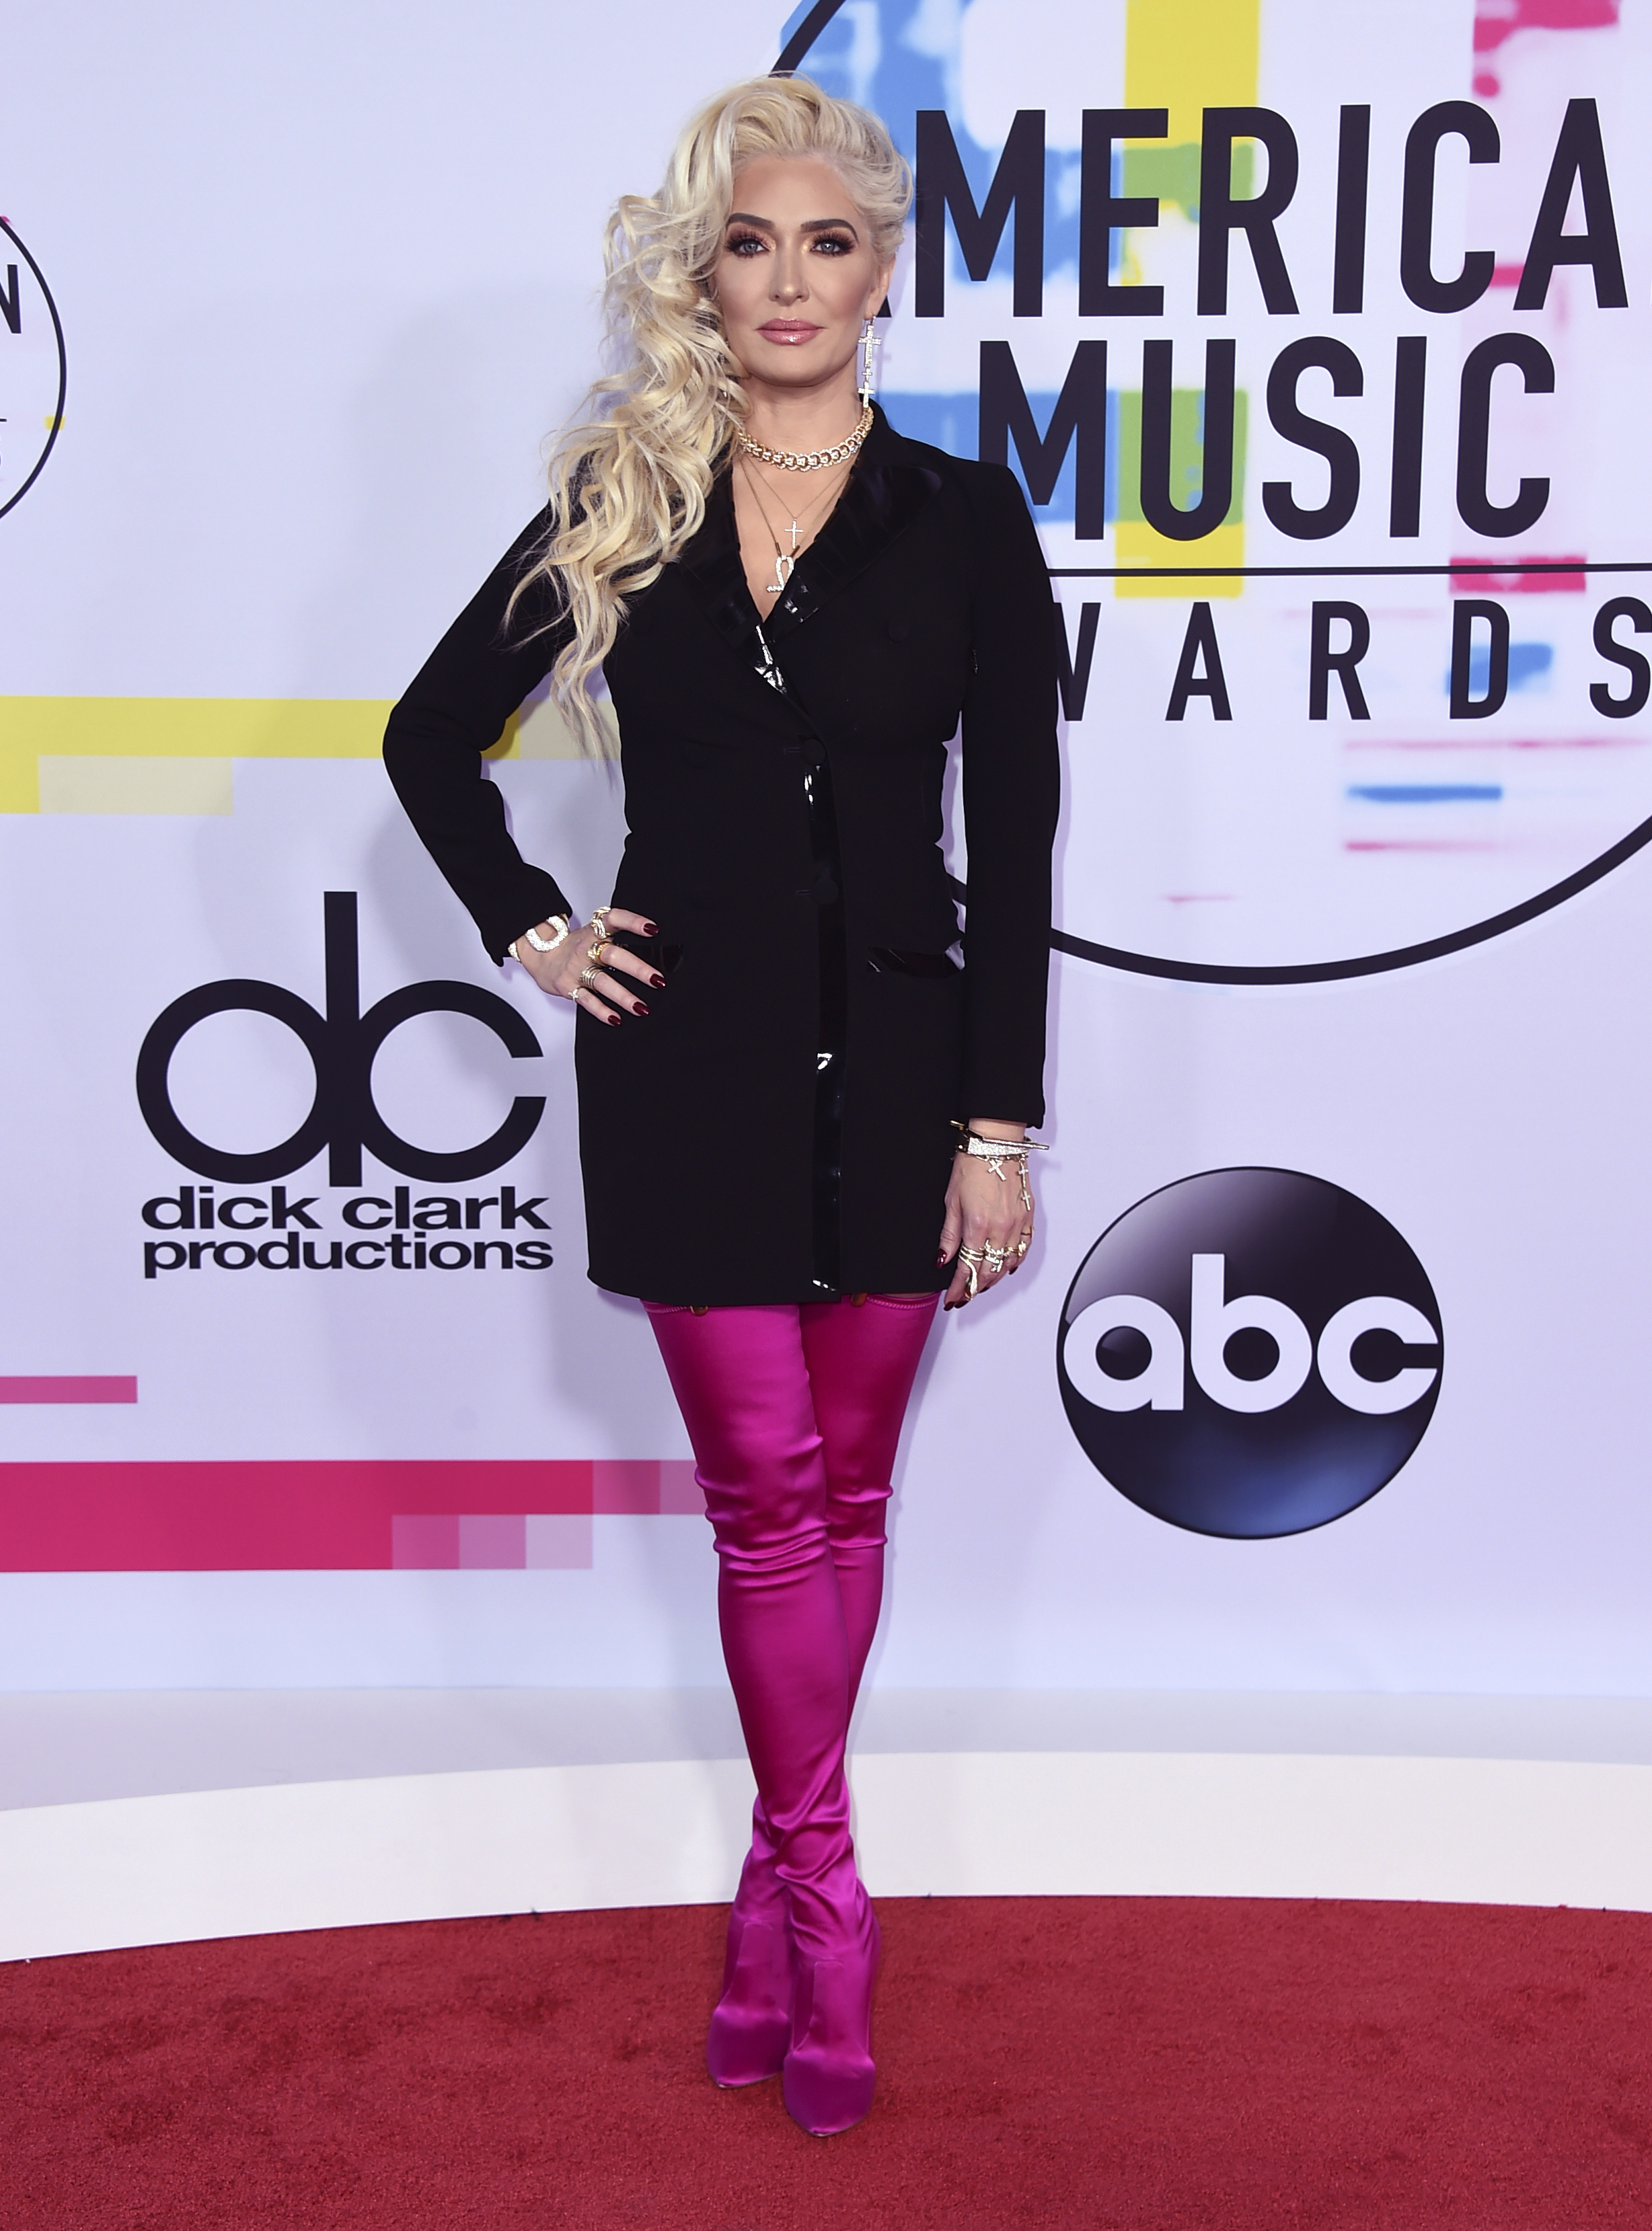 <div class='meta'><div class='origin-logo' data-origin='none'></div><span class='caption-text' data-credit='Jordan Strauss/Invision/AP'>Erika Jayne arrives at the American Music Awards at the Microsoft Theater on Sunday, Nov. 19, 2017, in Los Angeles.</span></div>